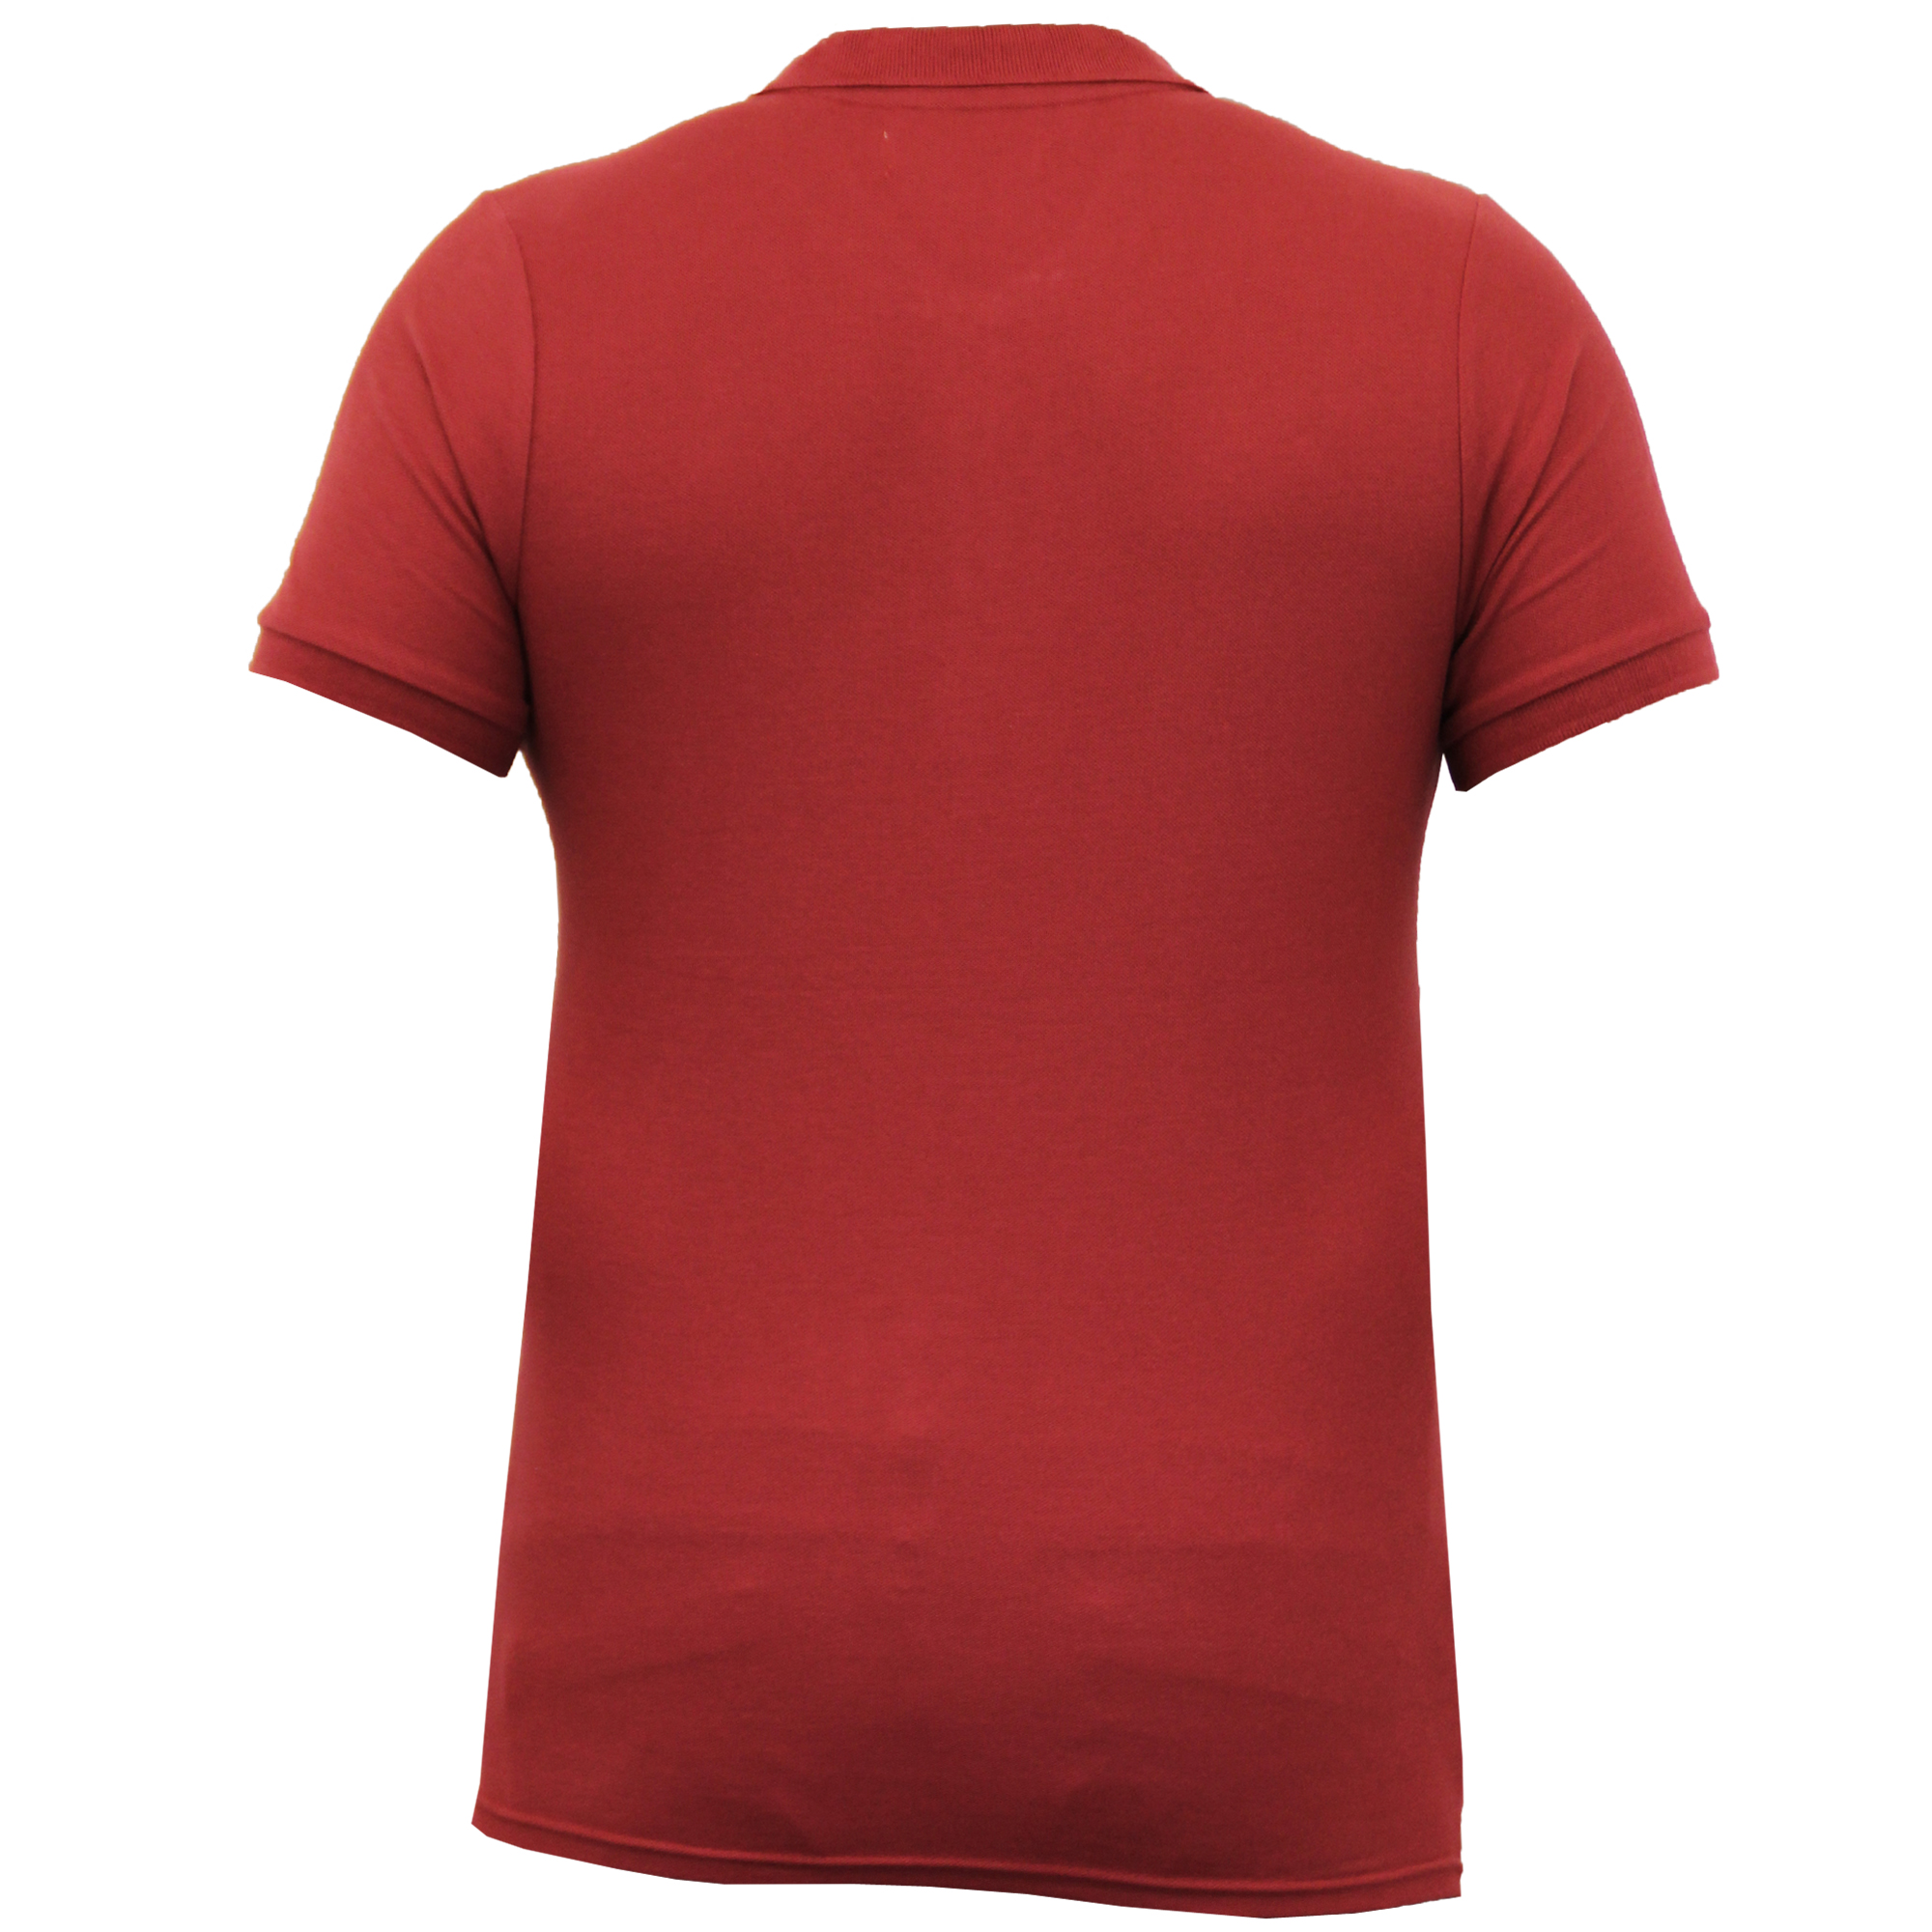 Mens-Polo-T-Shirt-Crosshatch-Pique-Top-Cotton-Short-Sleeved-Collared-Summer-New thumbnail 6